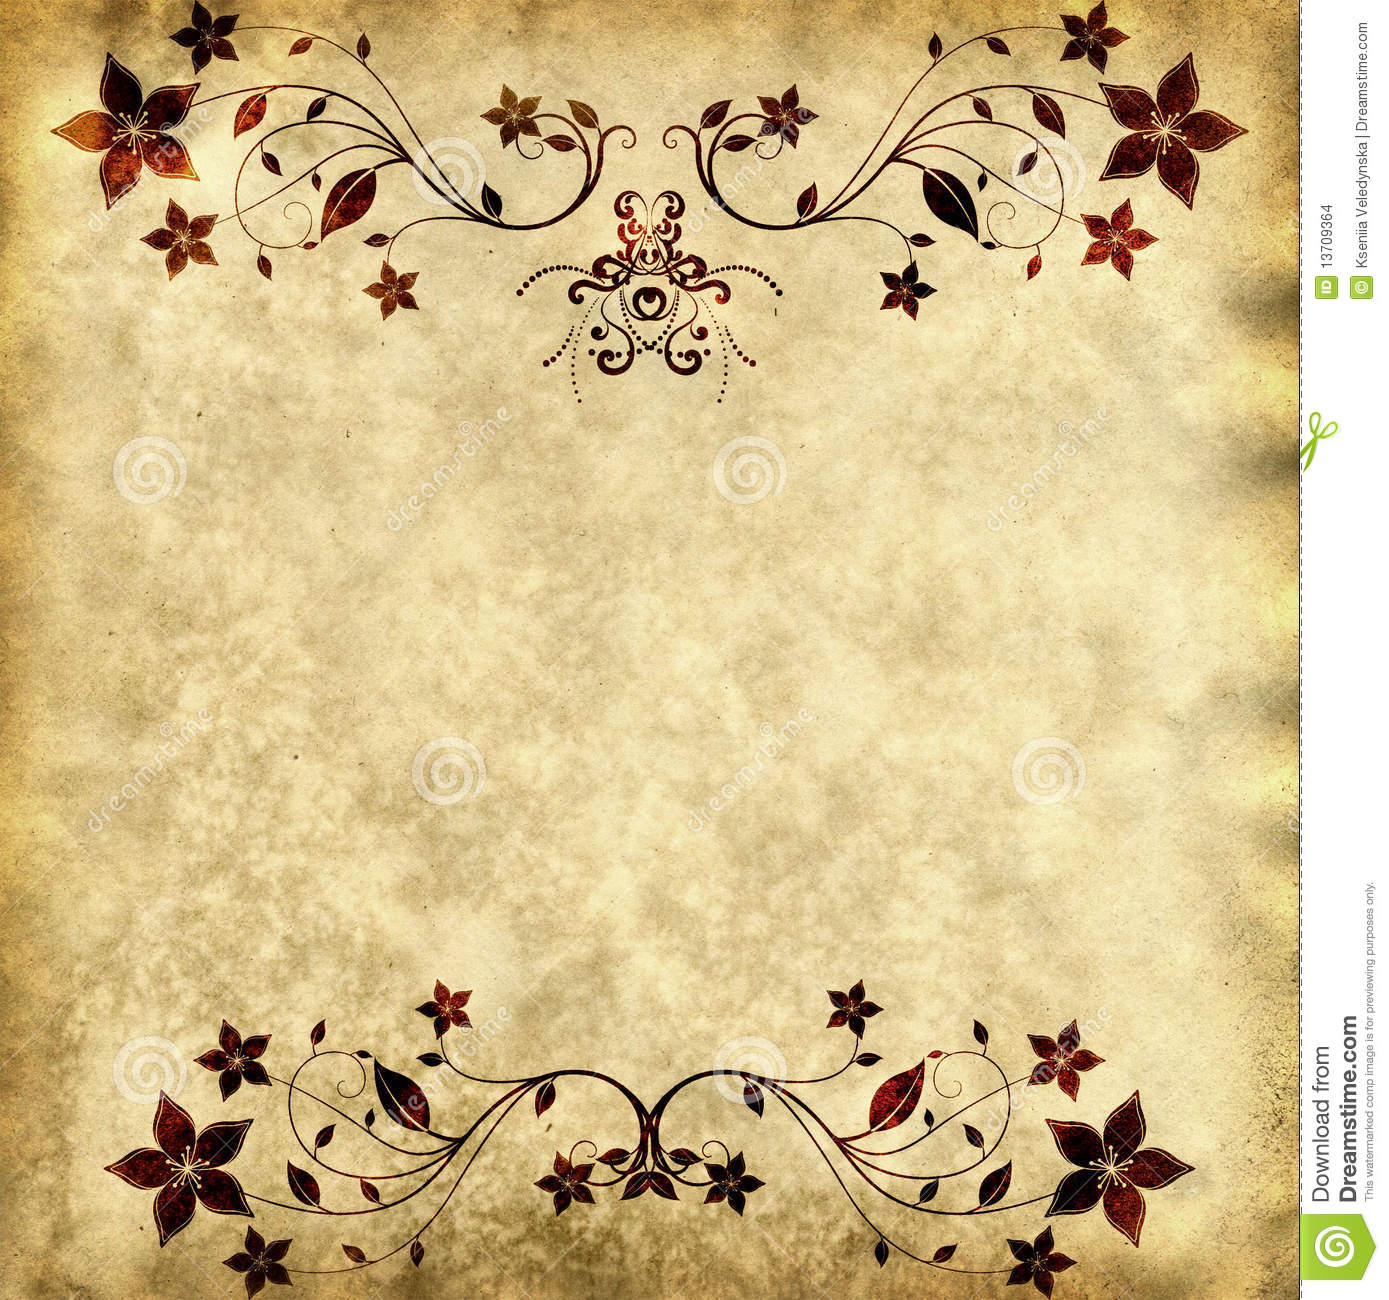 Old paper texture with floral frame